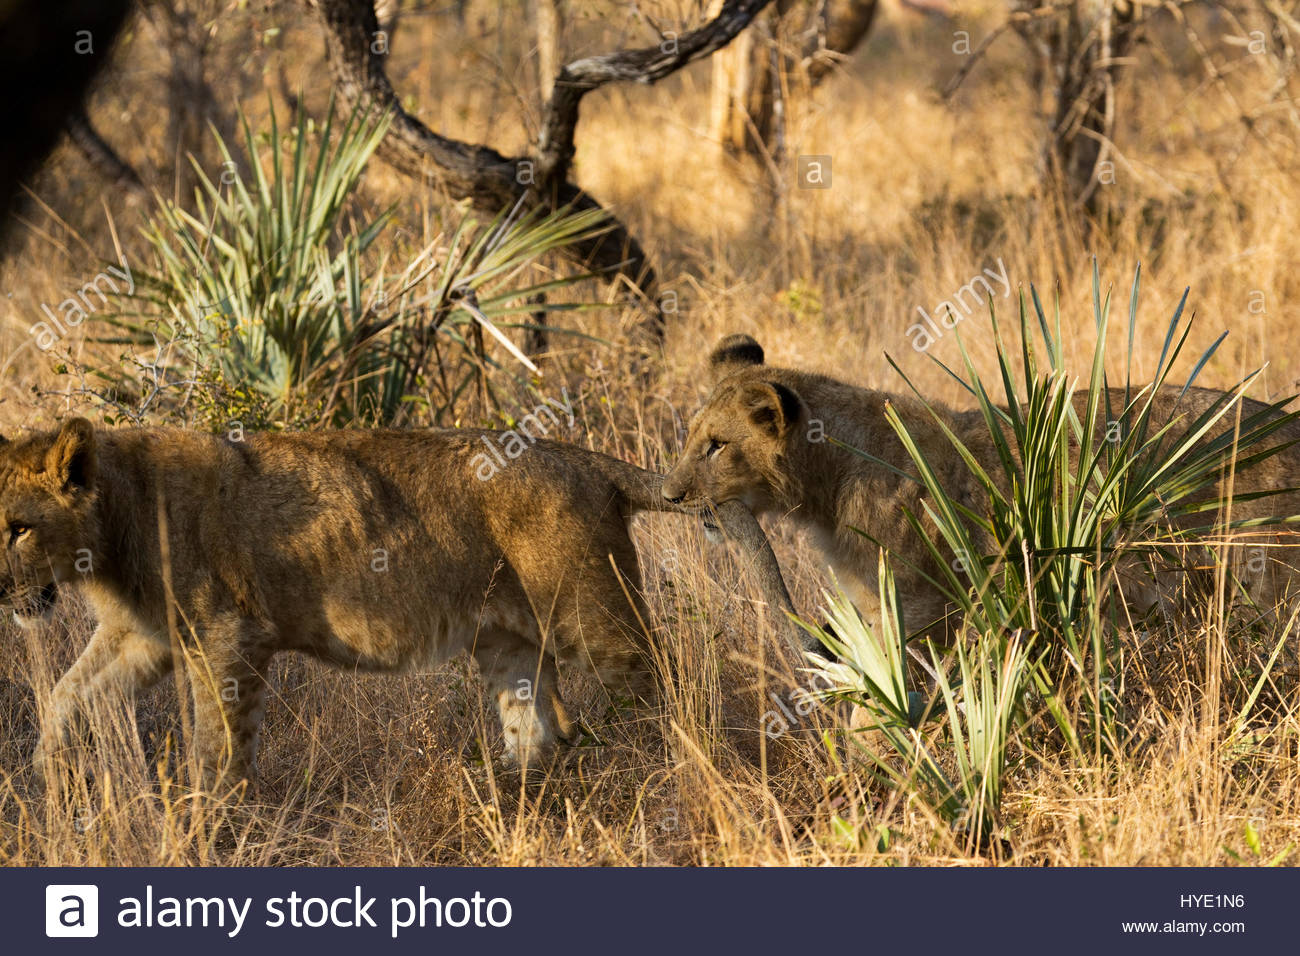 A lion cub playfully bites the tail of another cub. - Stock Image